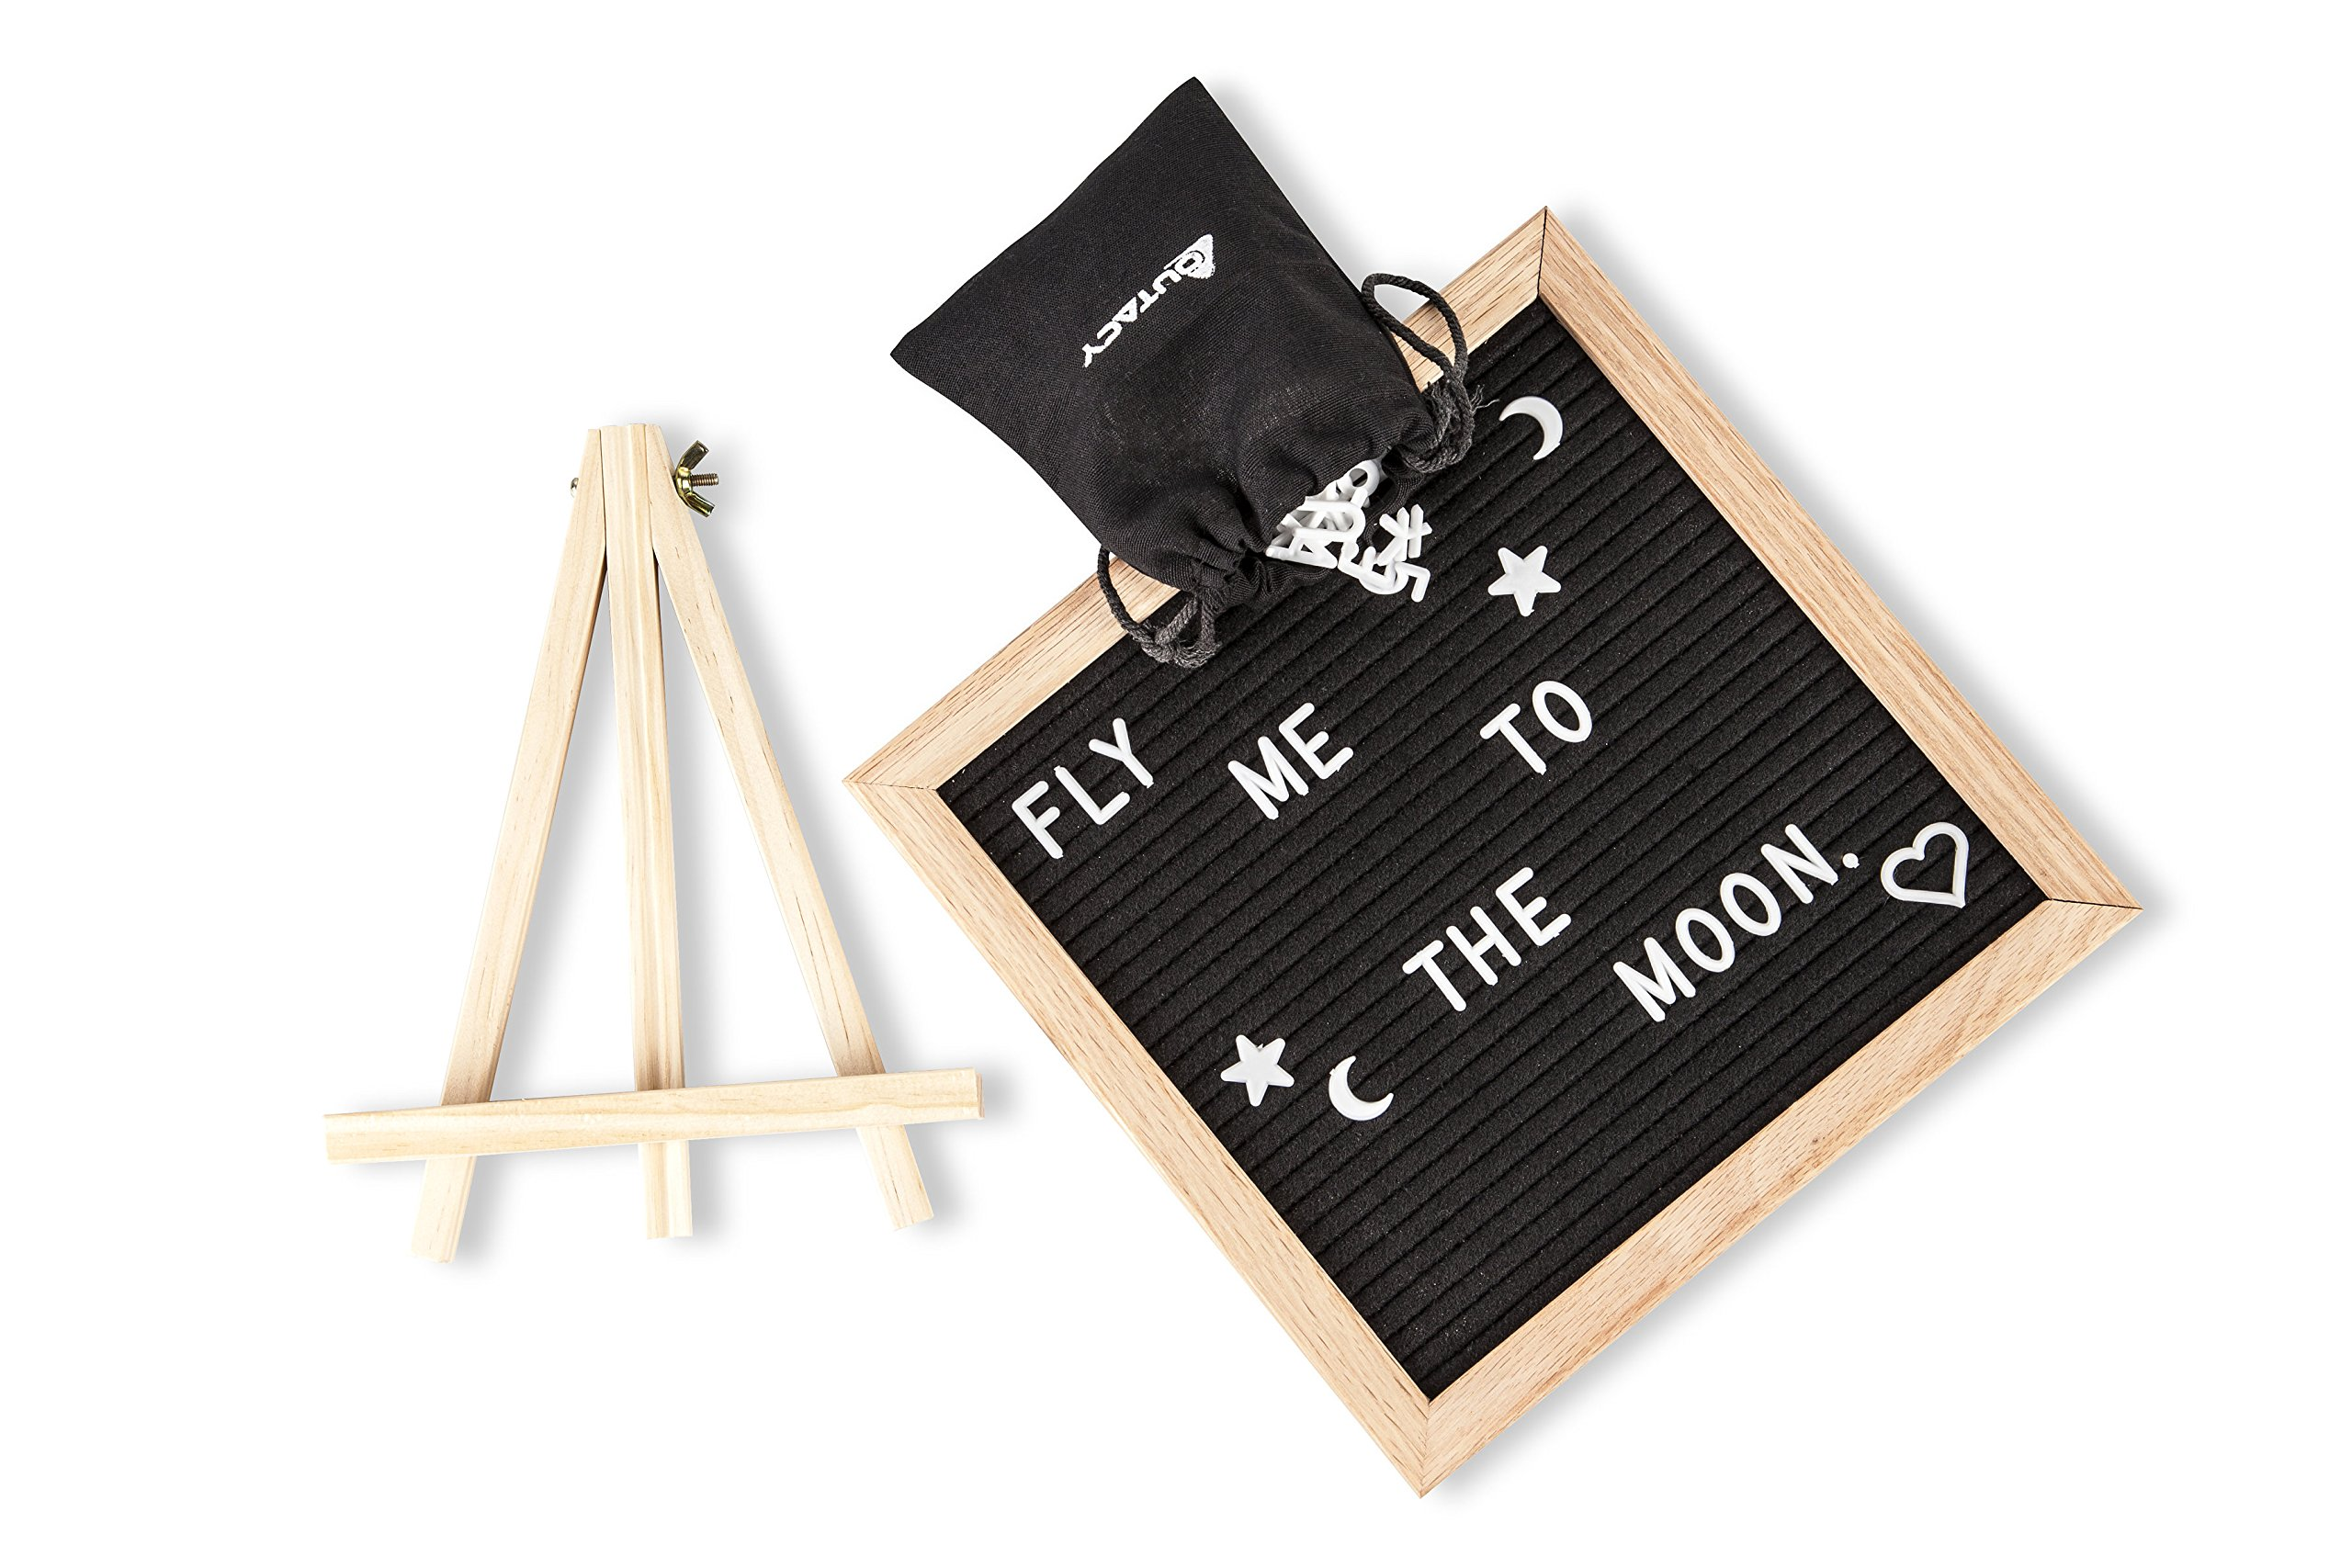 Felt Letter Board Sign: Decorative Wooden Changeable Marquee Message Board Set with 328 Letters, Numbers, Symbols and Emojis, Oak Wood Frame, Display Easel and Black Bag - 10x10 Inch Black Letterboard